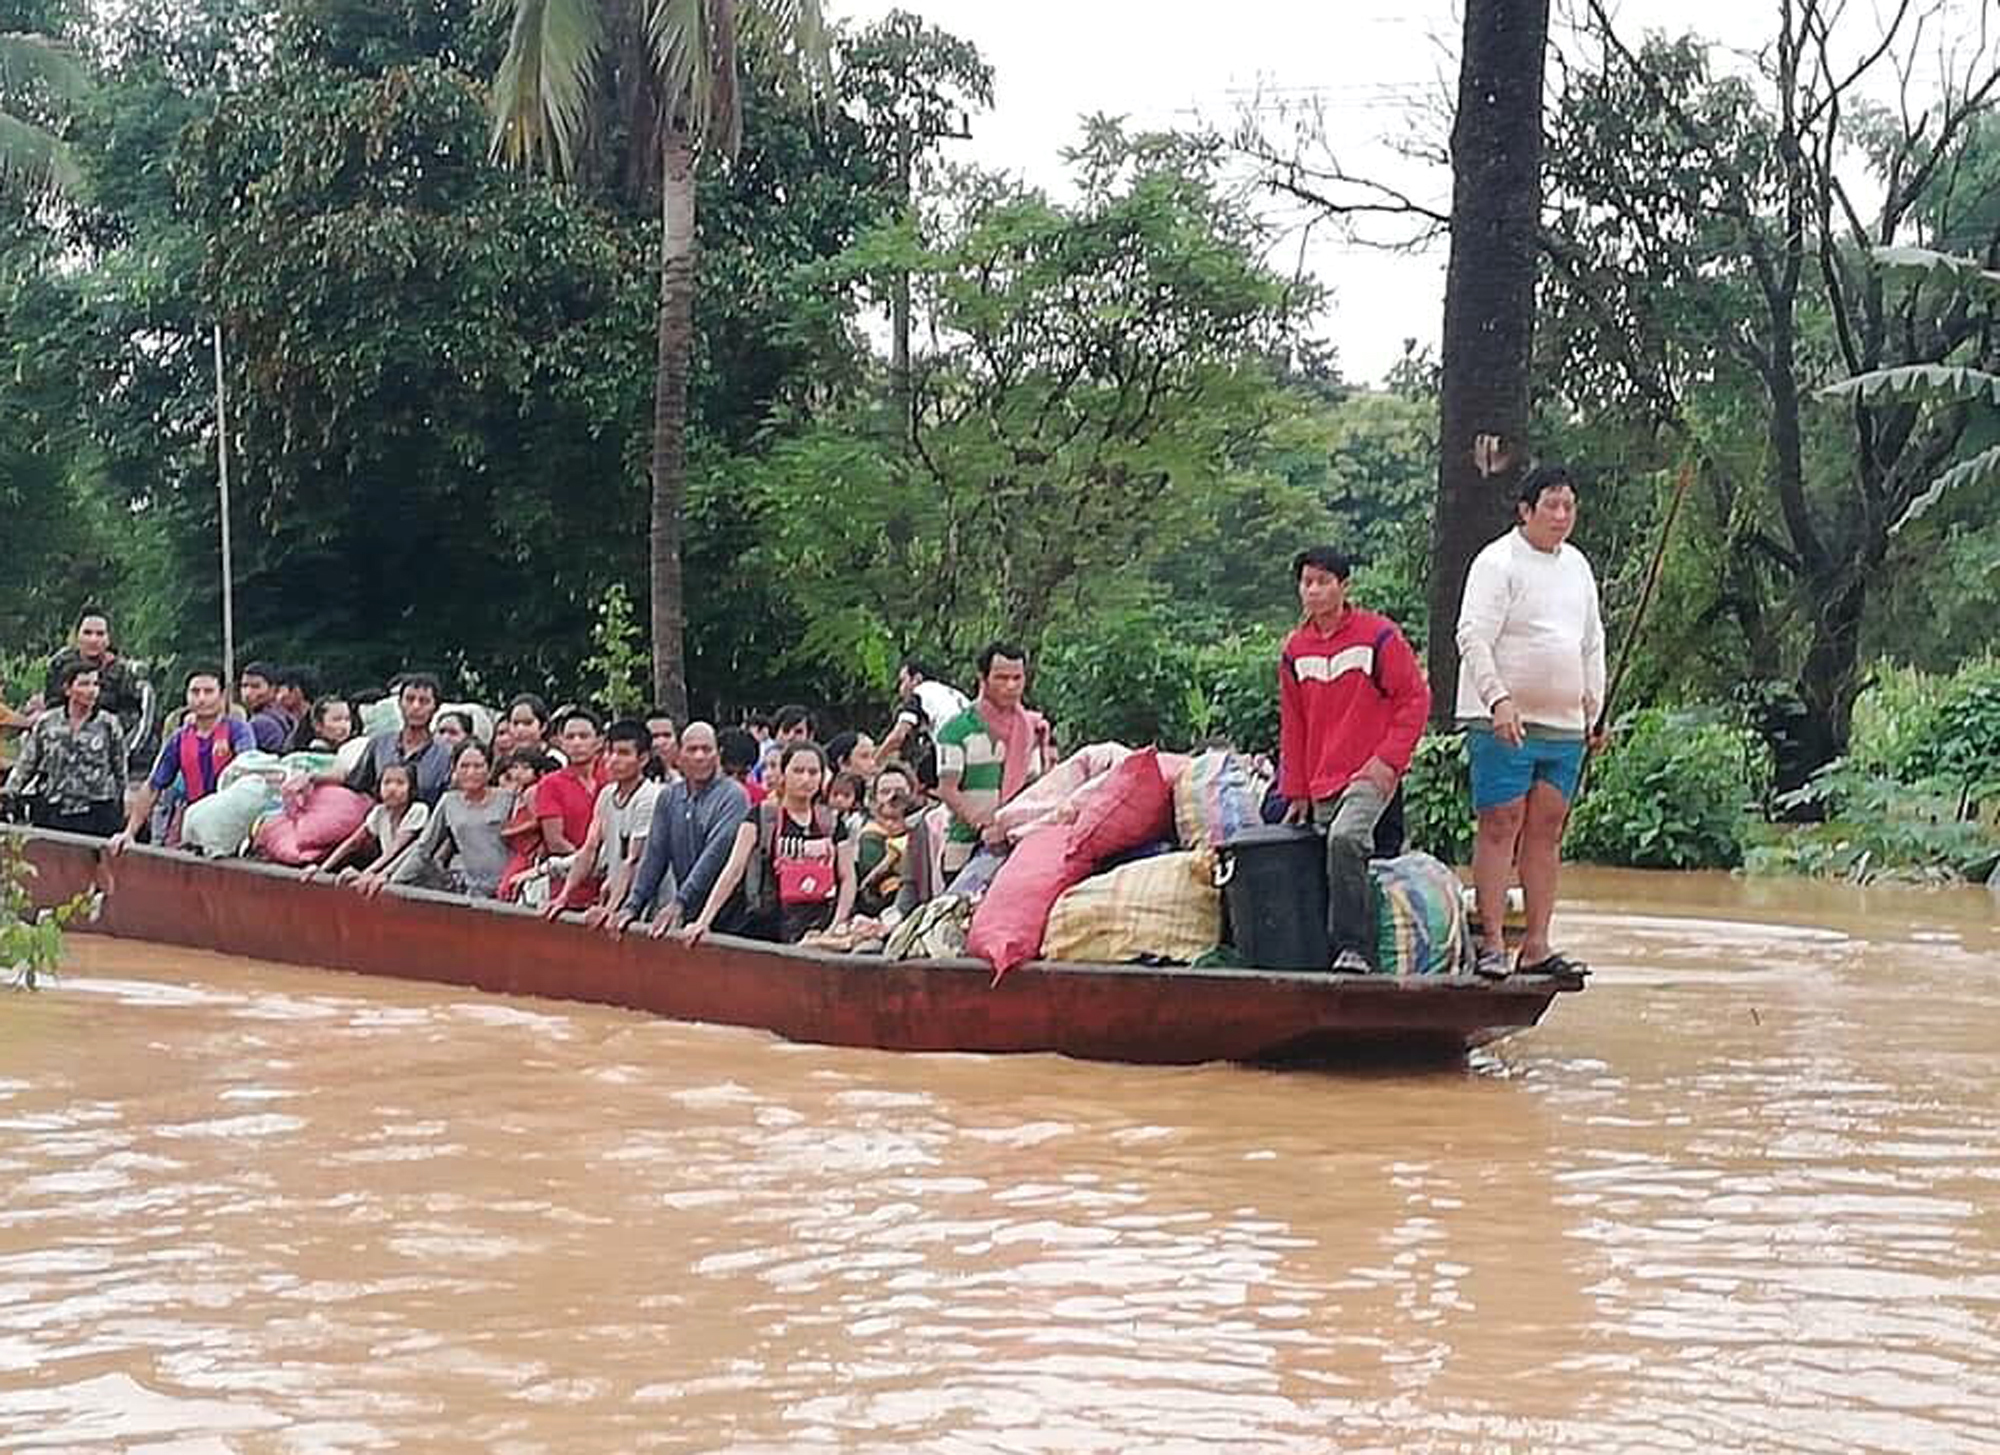 People are evacuated by boat after a dam failed in southeastern Laos.